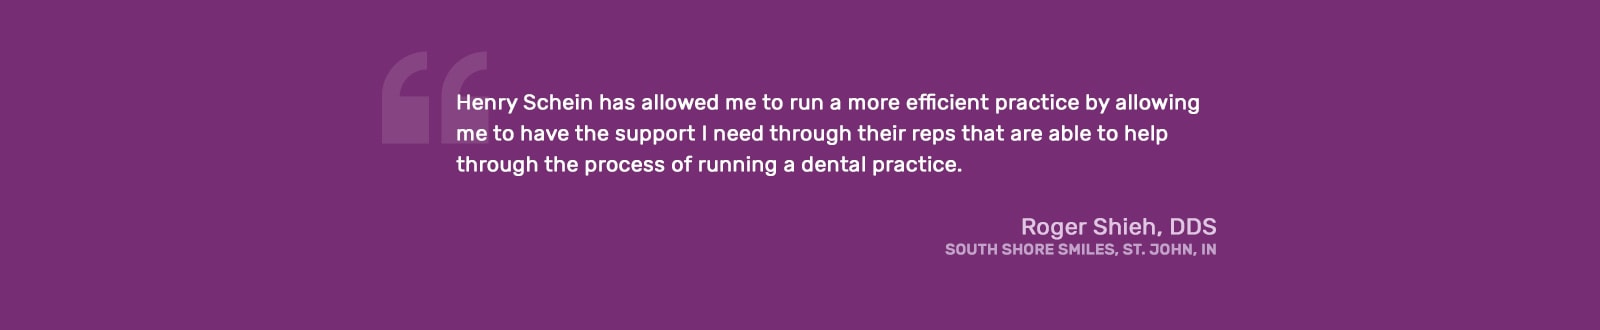 Roger Shieh, DDS - Quote